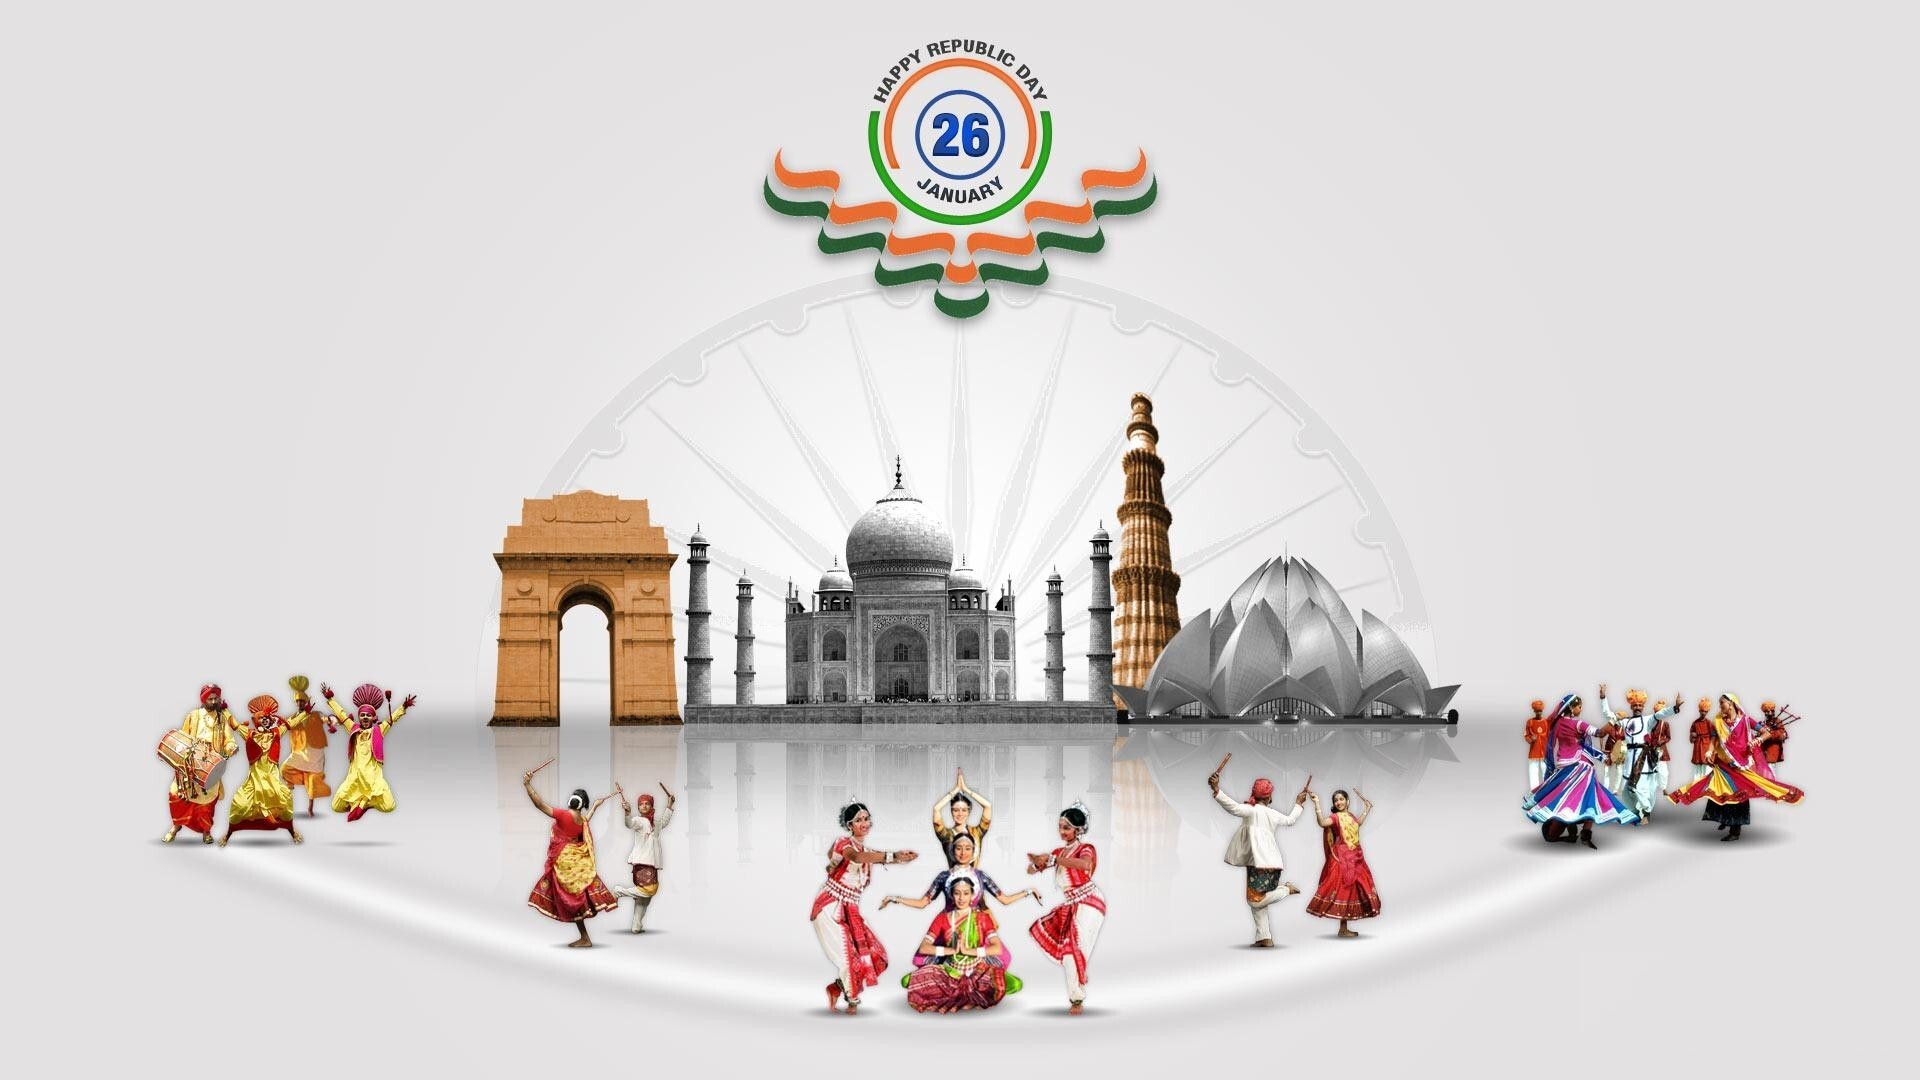 Amar jawan happy republic day wallpaper hd wallpapers related wallpapers altavistaventures Image collections